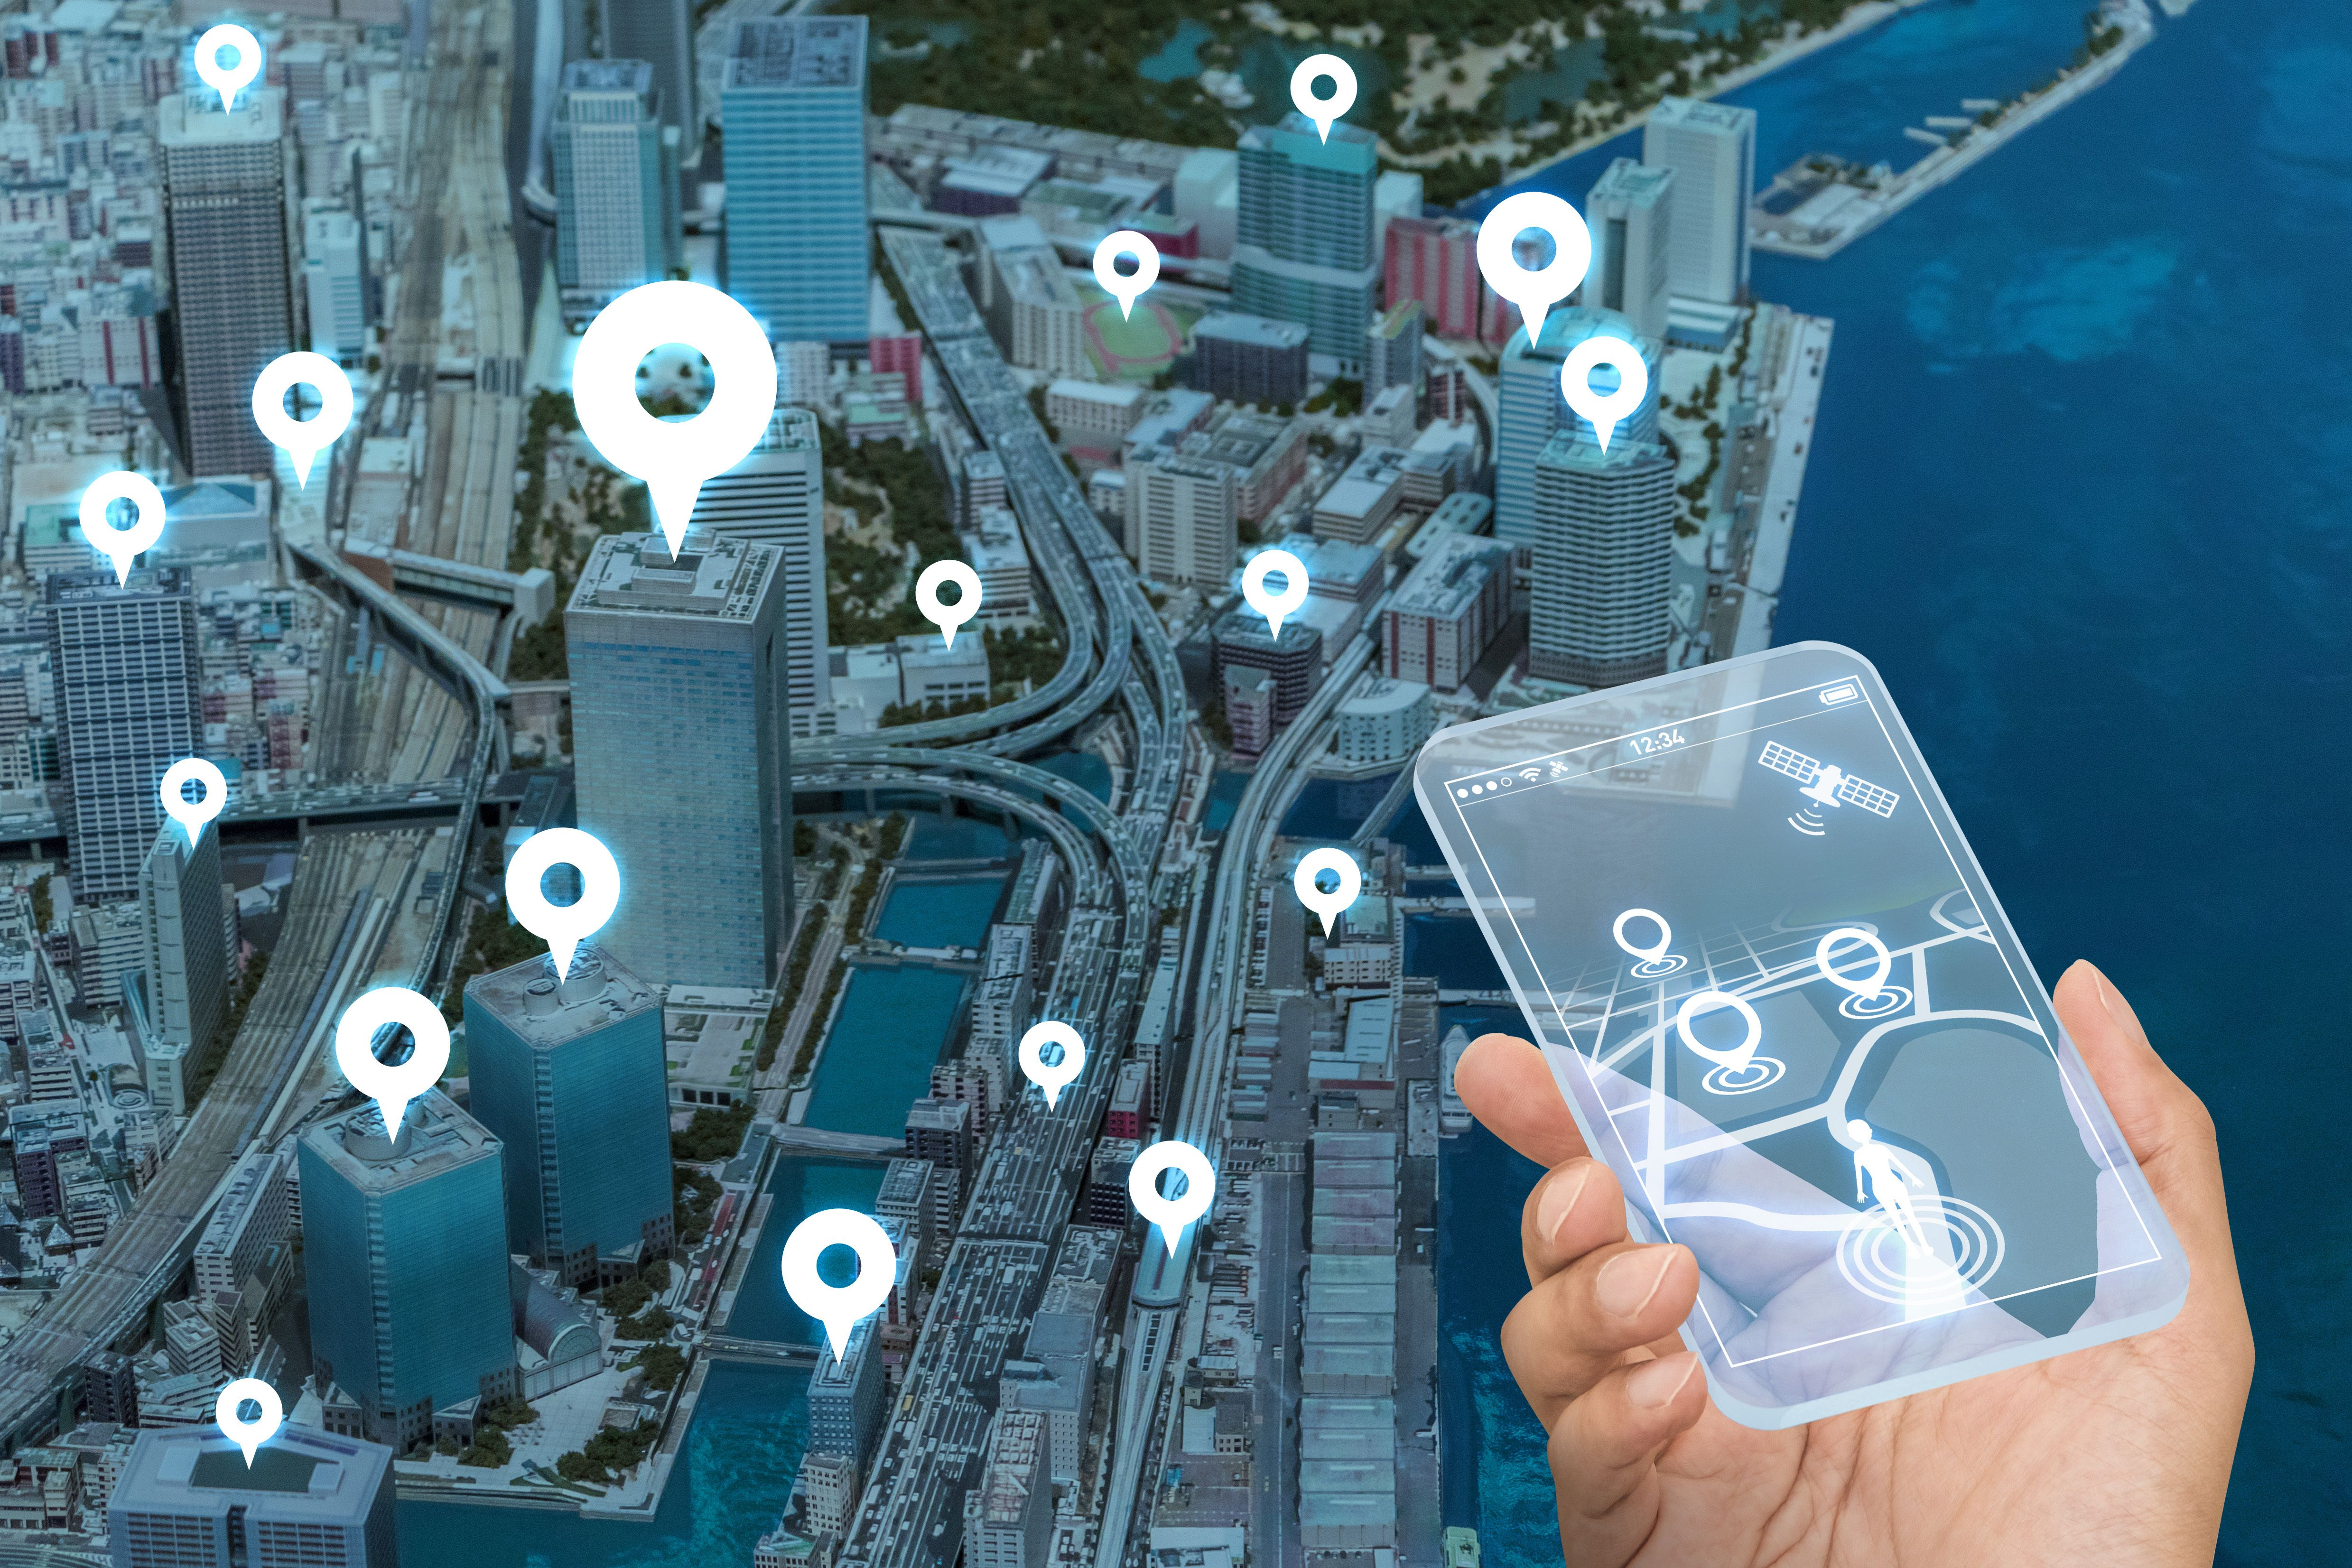 Get innovative geospatial solutions based on geographical